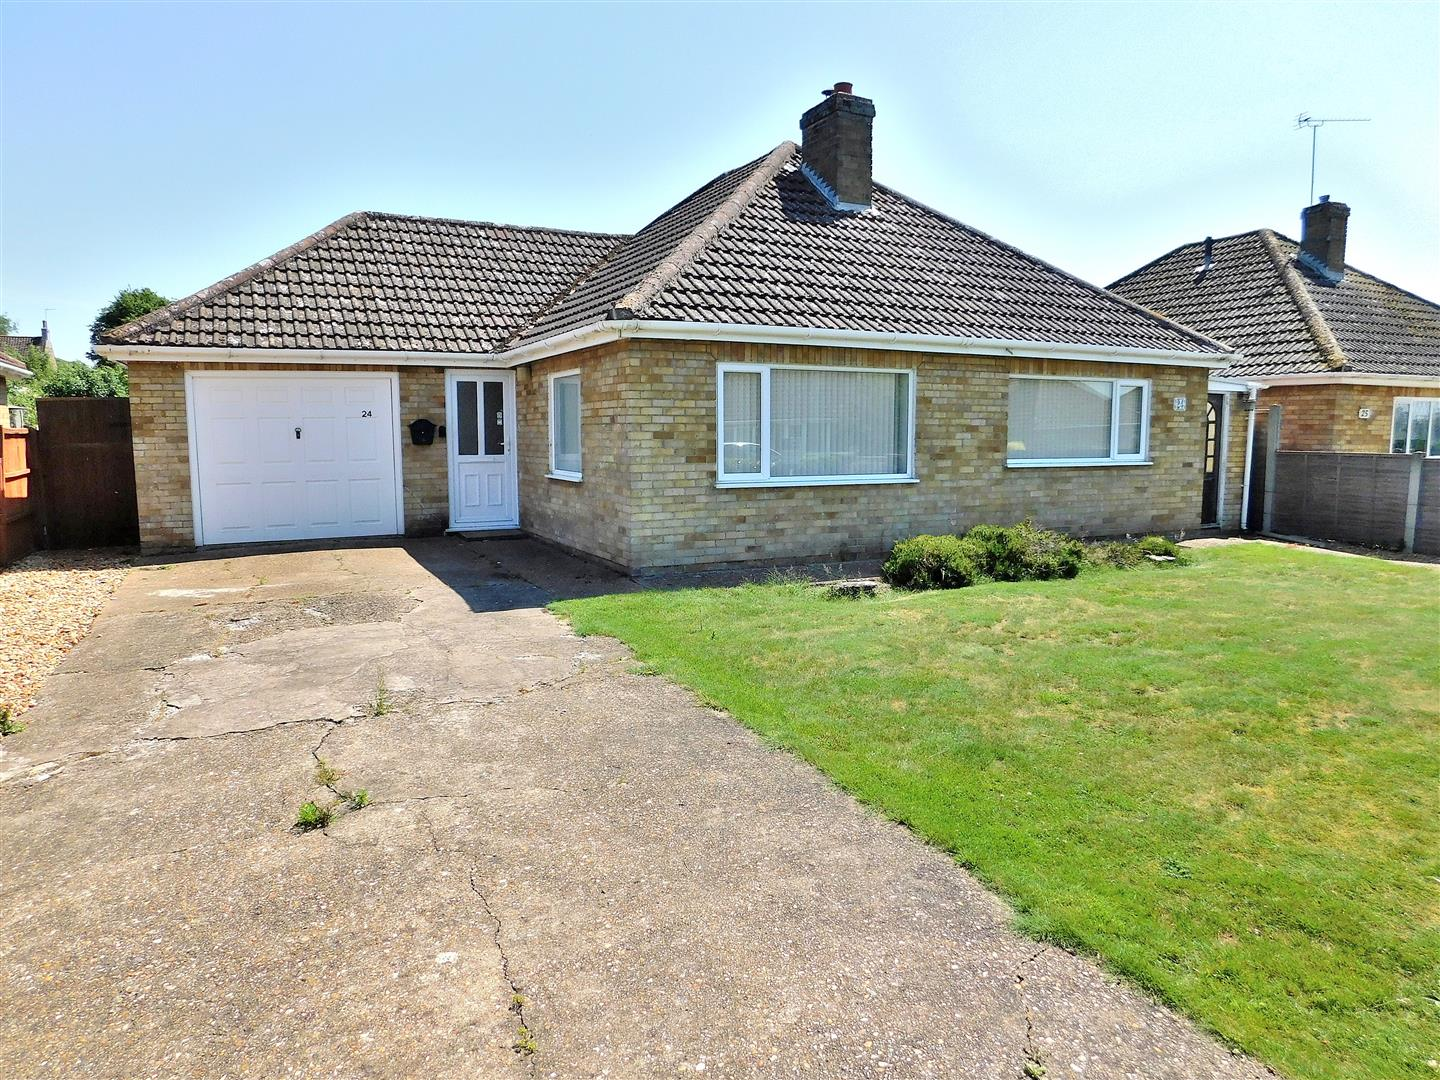 3 bed detached bungalow for sale in King's Lynn, PE33 0JZ  - Property Image 1